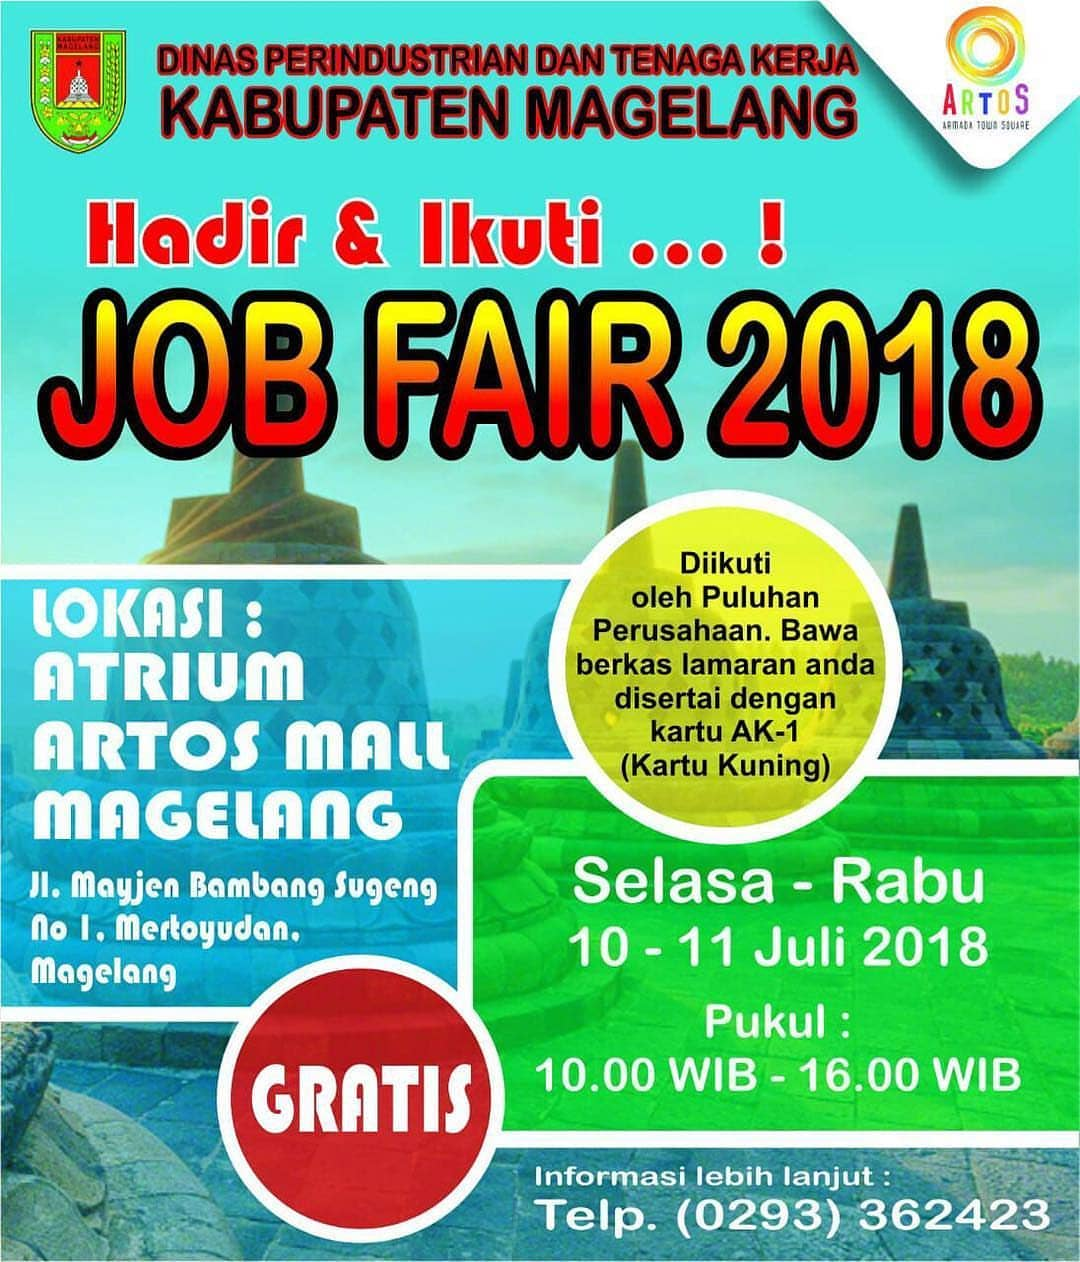 Job Fair Magelang - Atrium Artos Mall, 10-11 Juli 2018